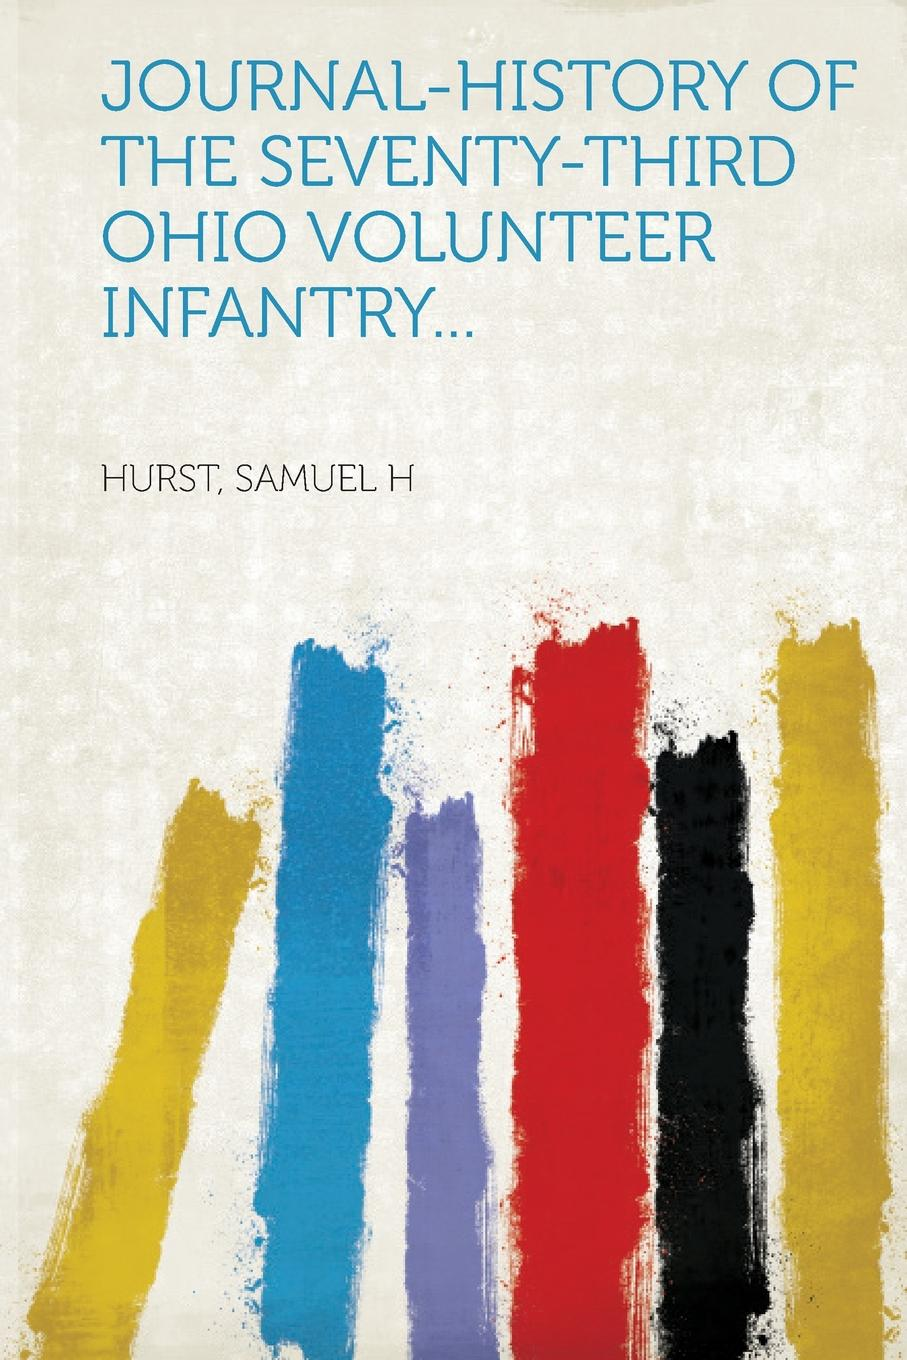 Journal-History of the Seventy-Third Ohio Volunteer Infantry...